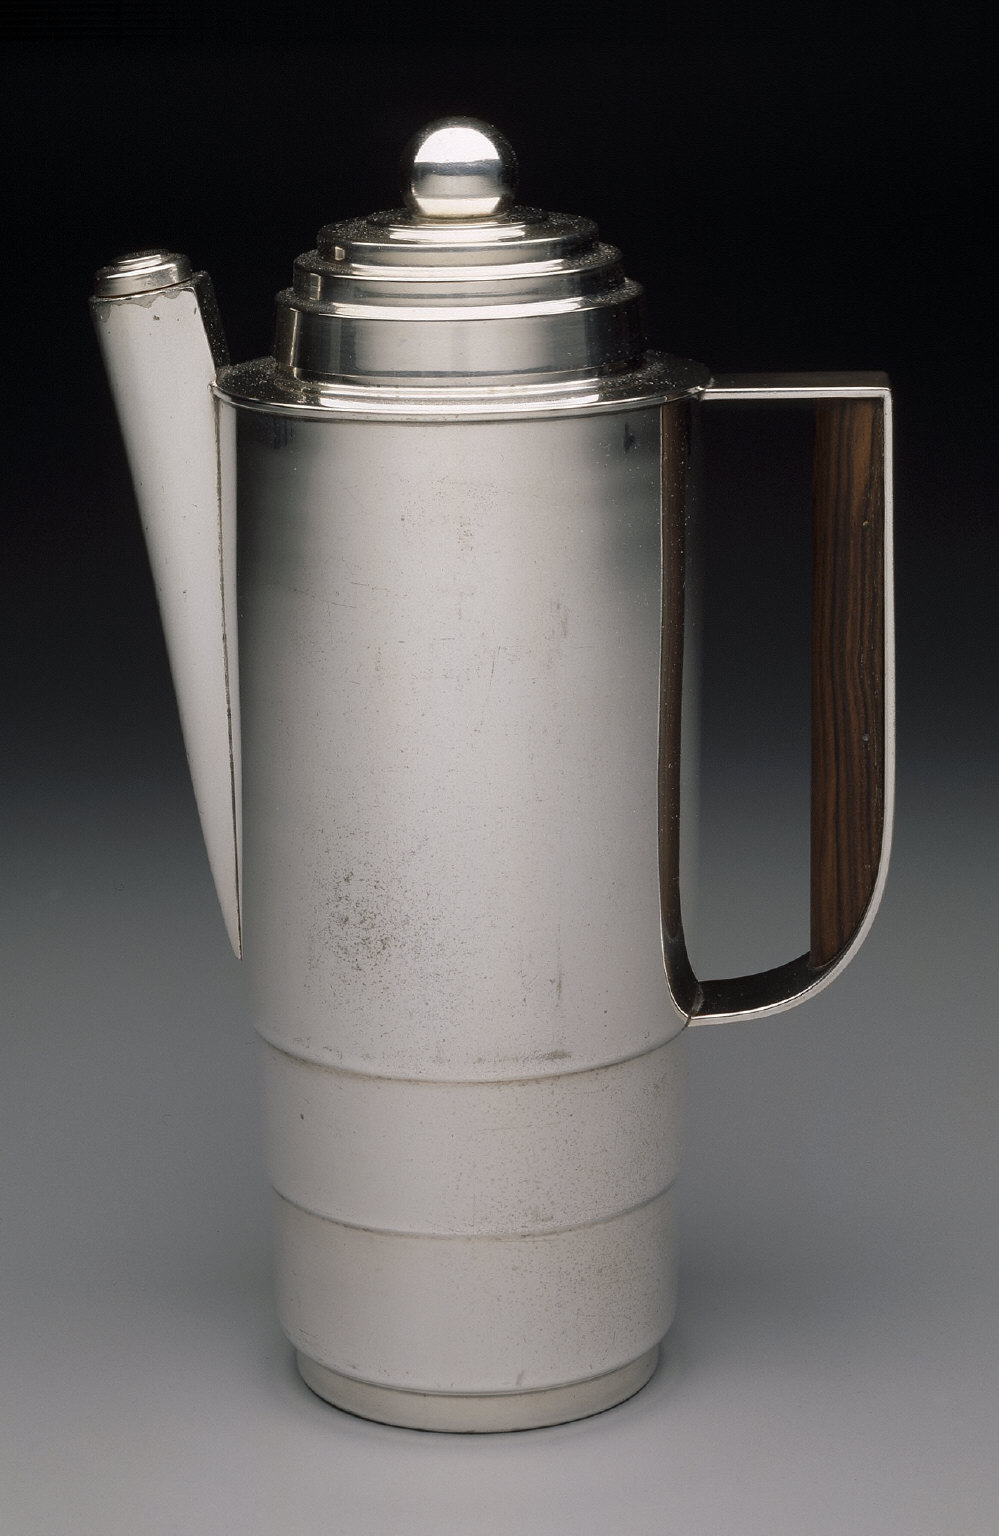 'Silver Style' beverage mixer